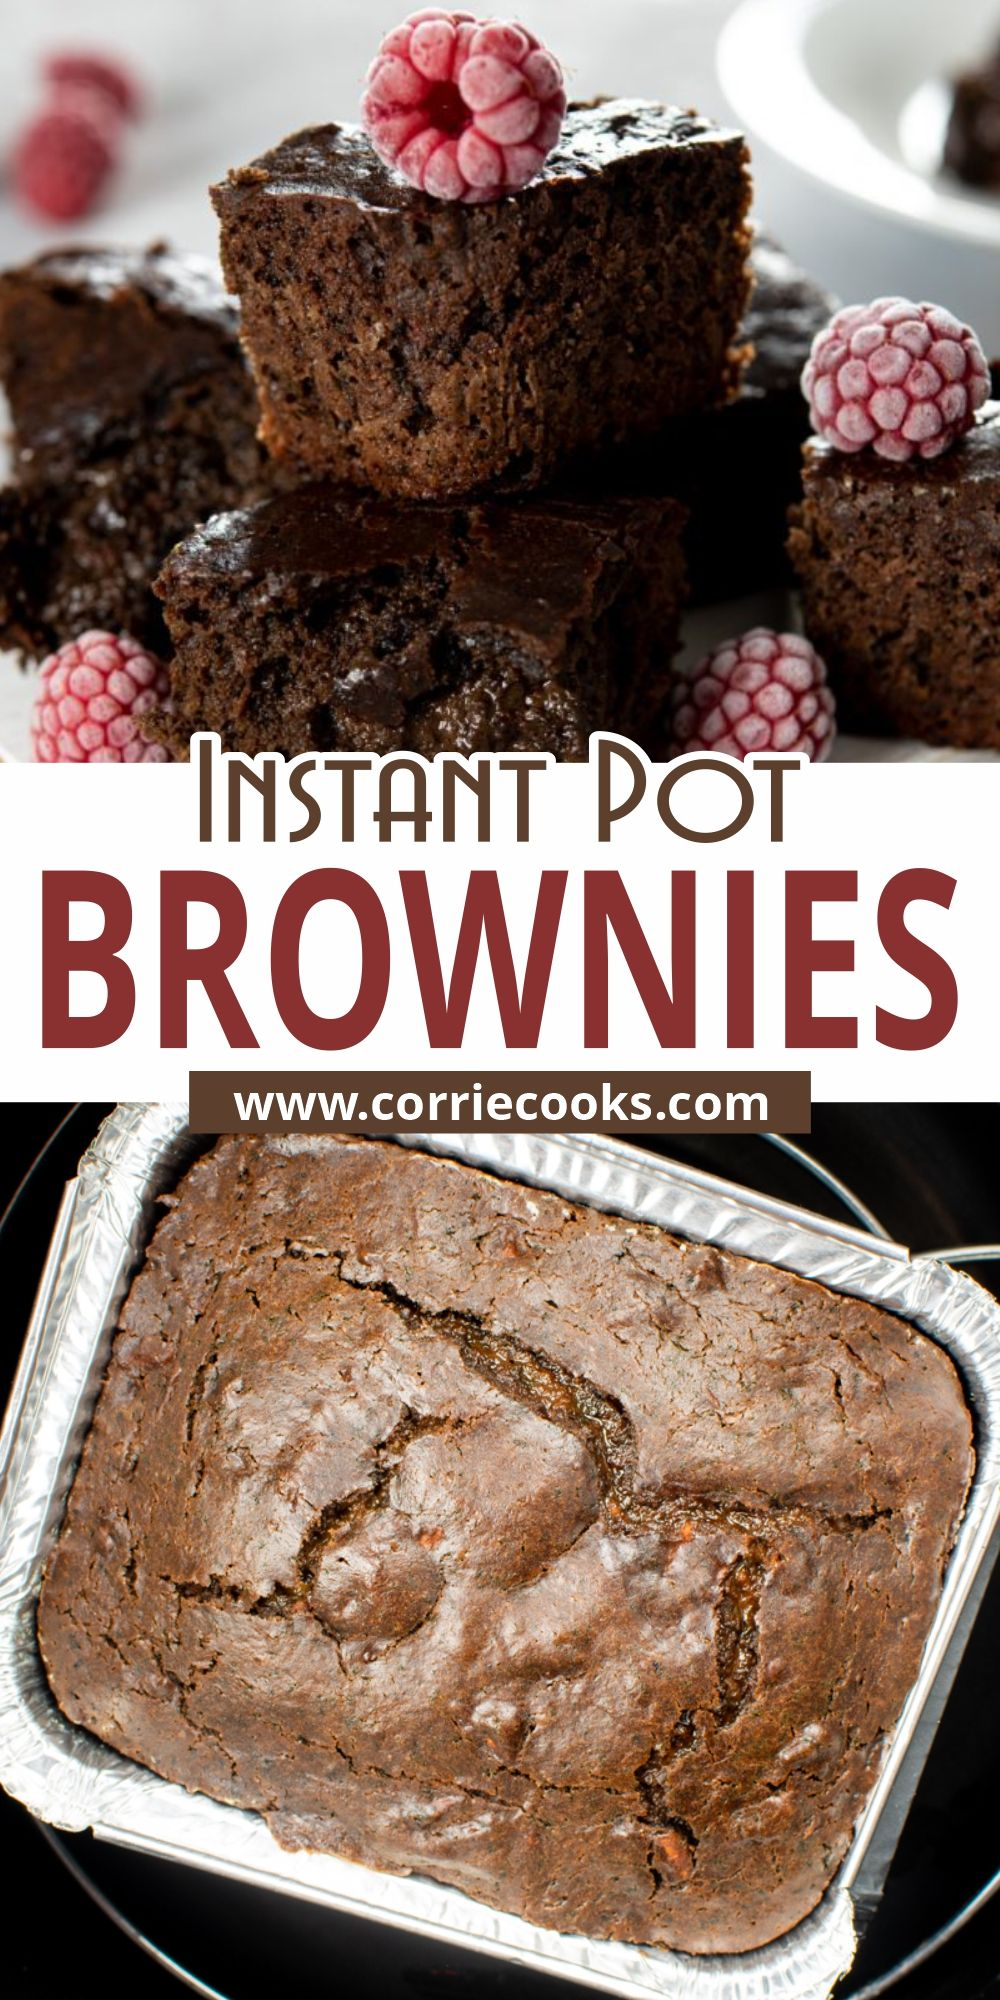 Instant Pot Brownies Recipe In 2021 Instant Pot Recipes Chocolate Recipes Pot Brownie